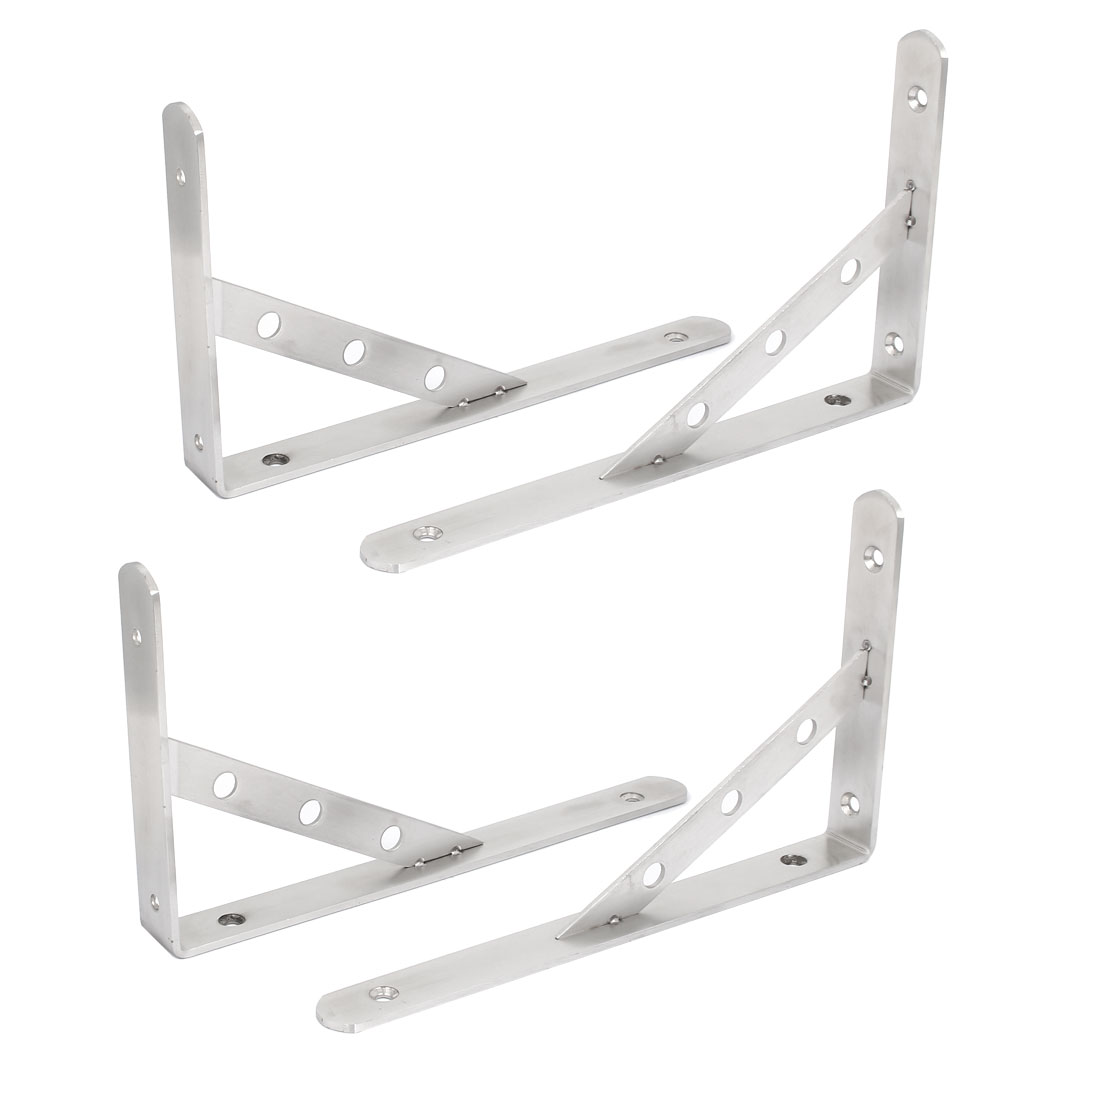 "10"" Long Stainless Steel L Shaped Right Angle Shelf Brackets 4 Pcs"